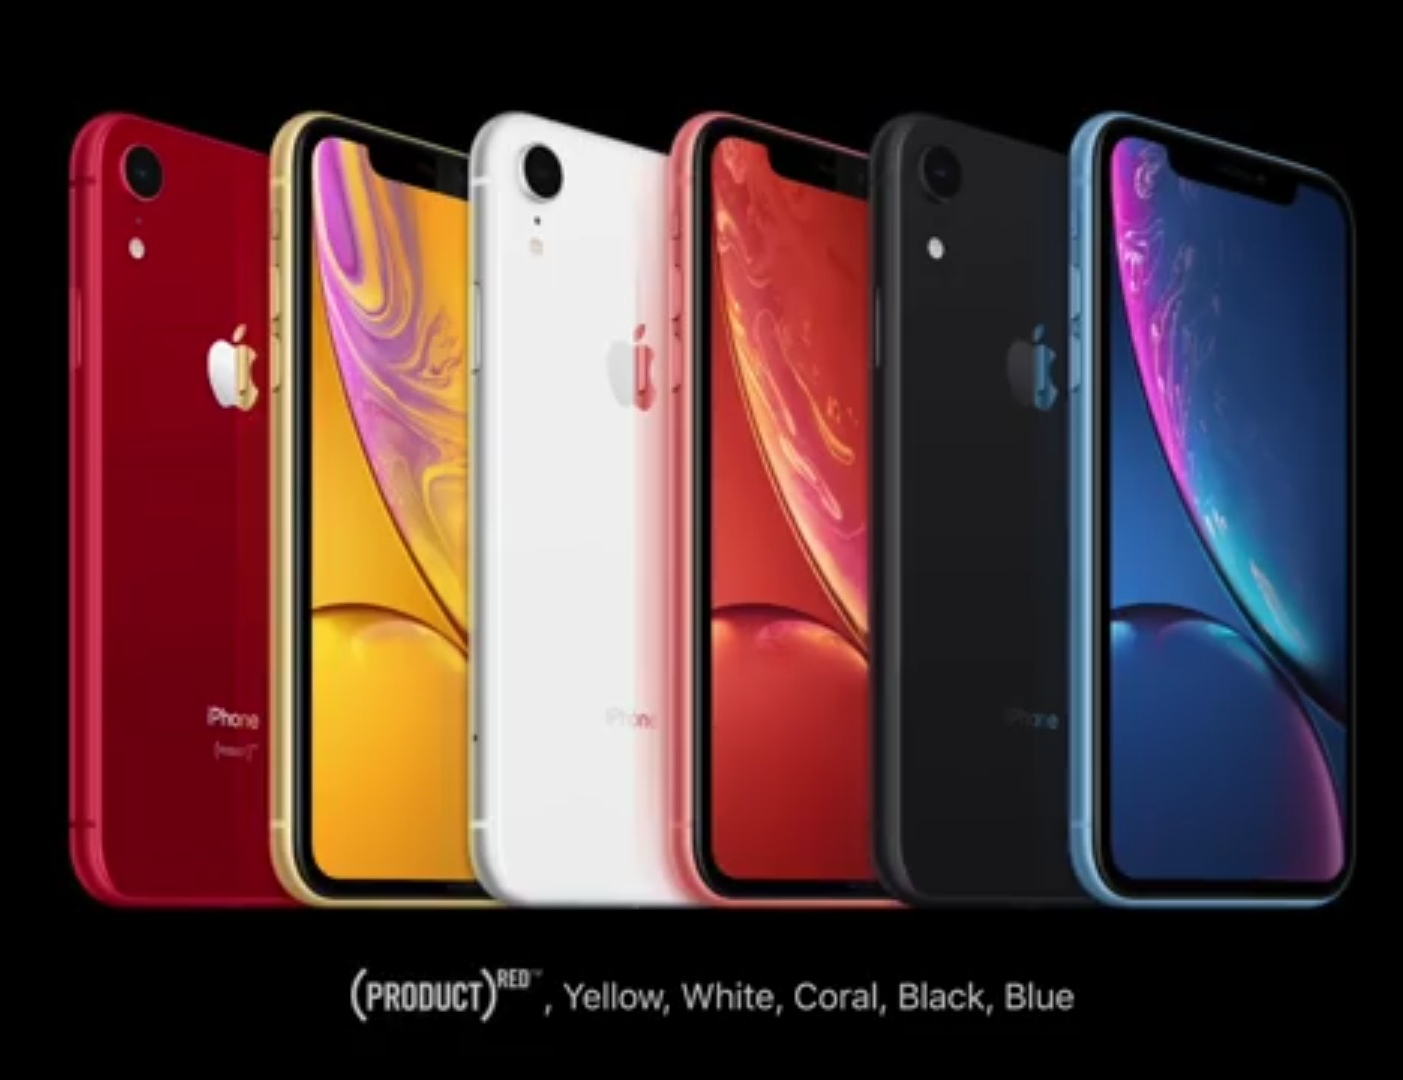 cheapest iphone in 2018 apple iphone xr tech news